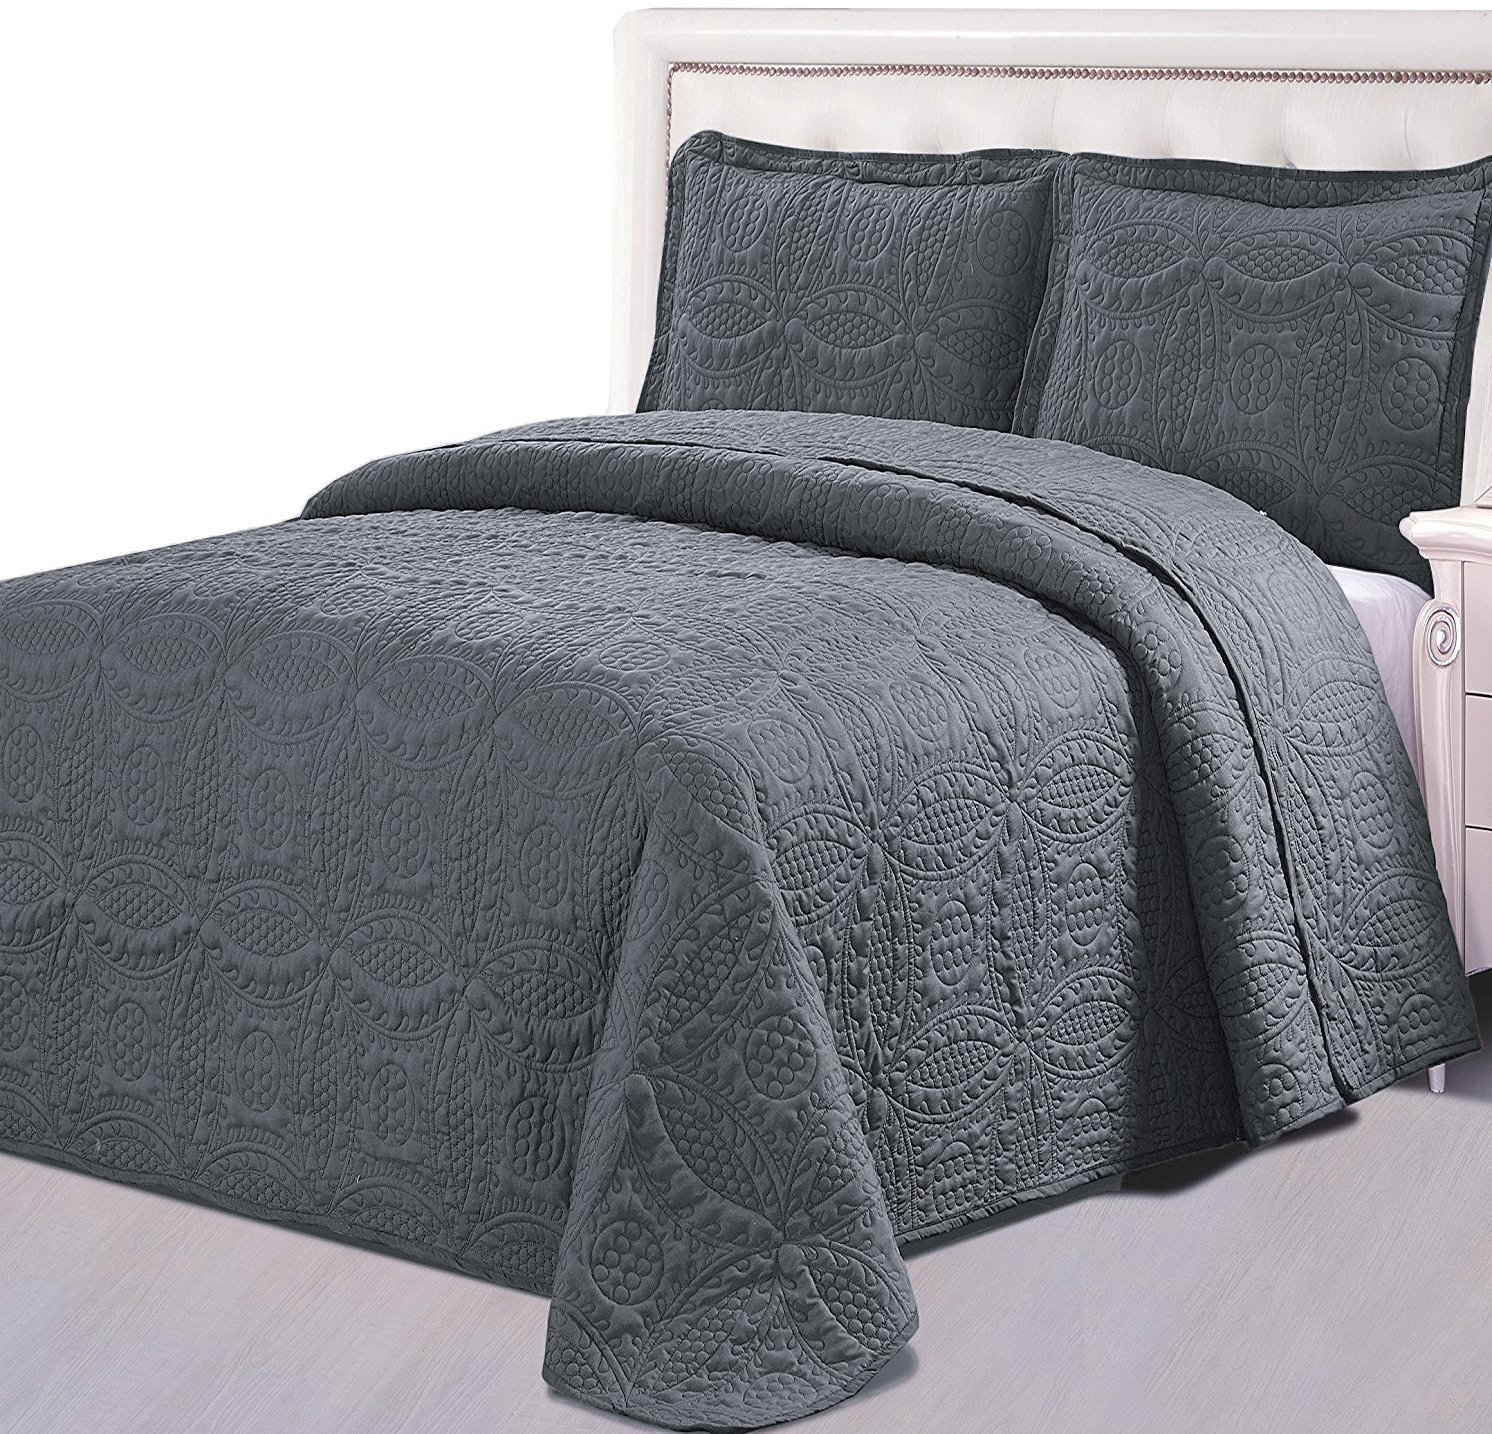 Utopia Bedding Bedspread Set (Queen, Charcoal Grey) - 3 Piece Luxurious Soft Brushed Microfiber Coverlet Set - Quilted Embroidery Over Sized Bed-Cover